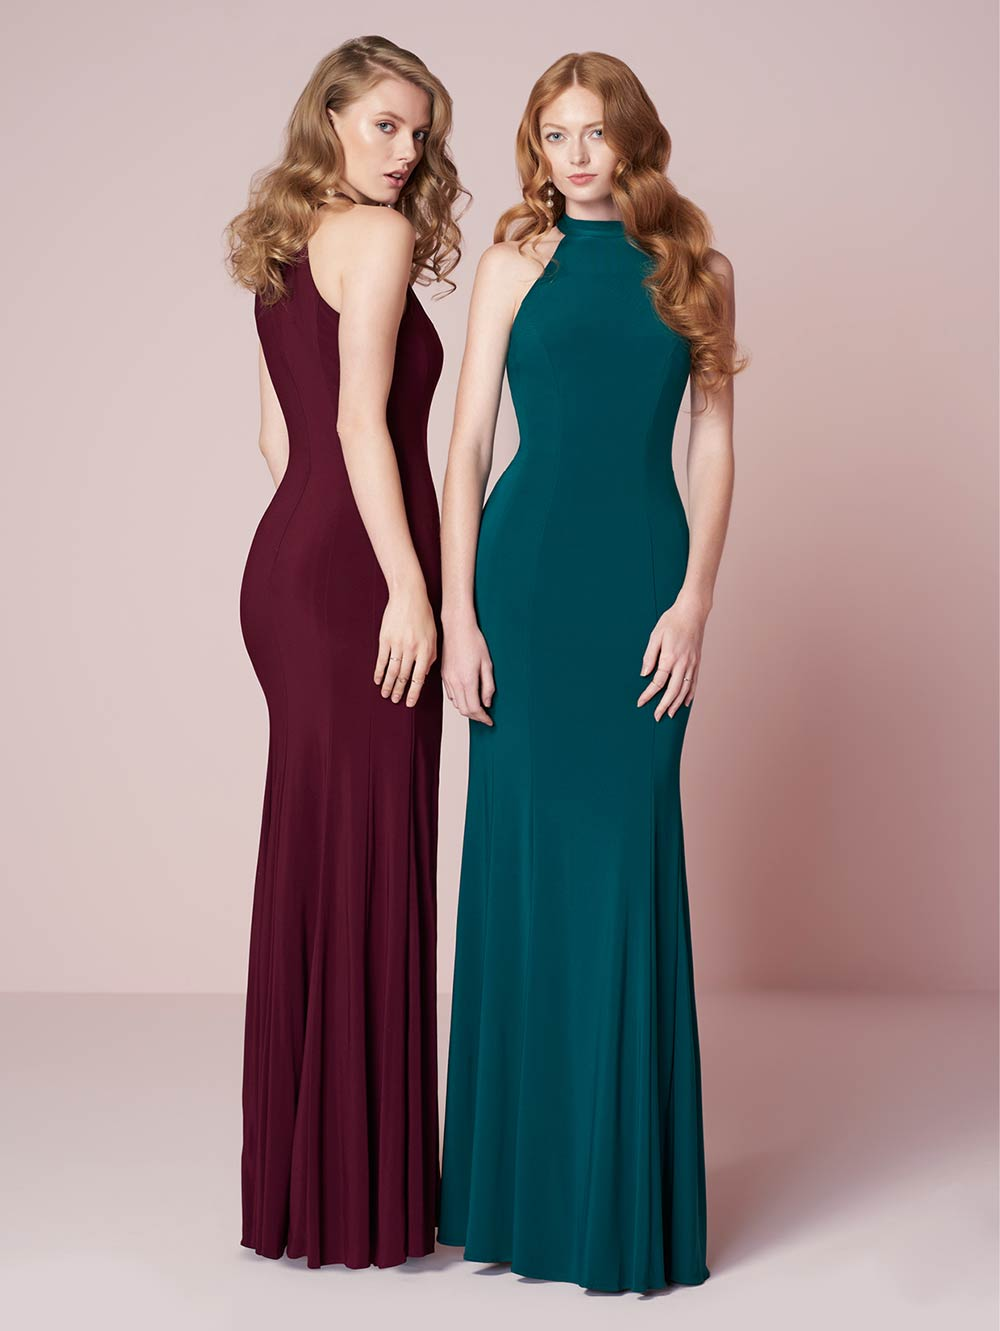 bridesmaid-dresses-jacquelin-bridals-canada-27760